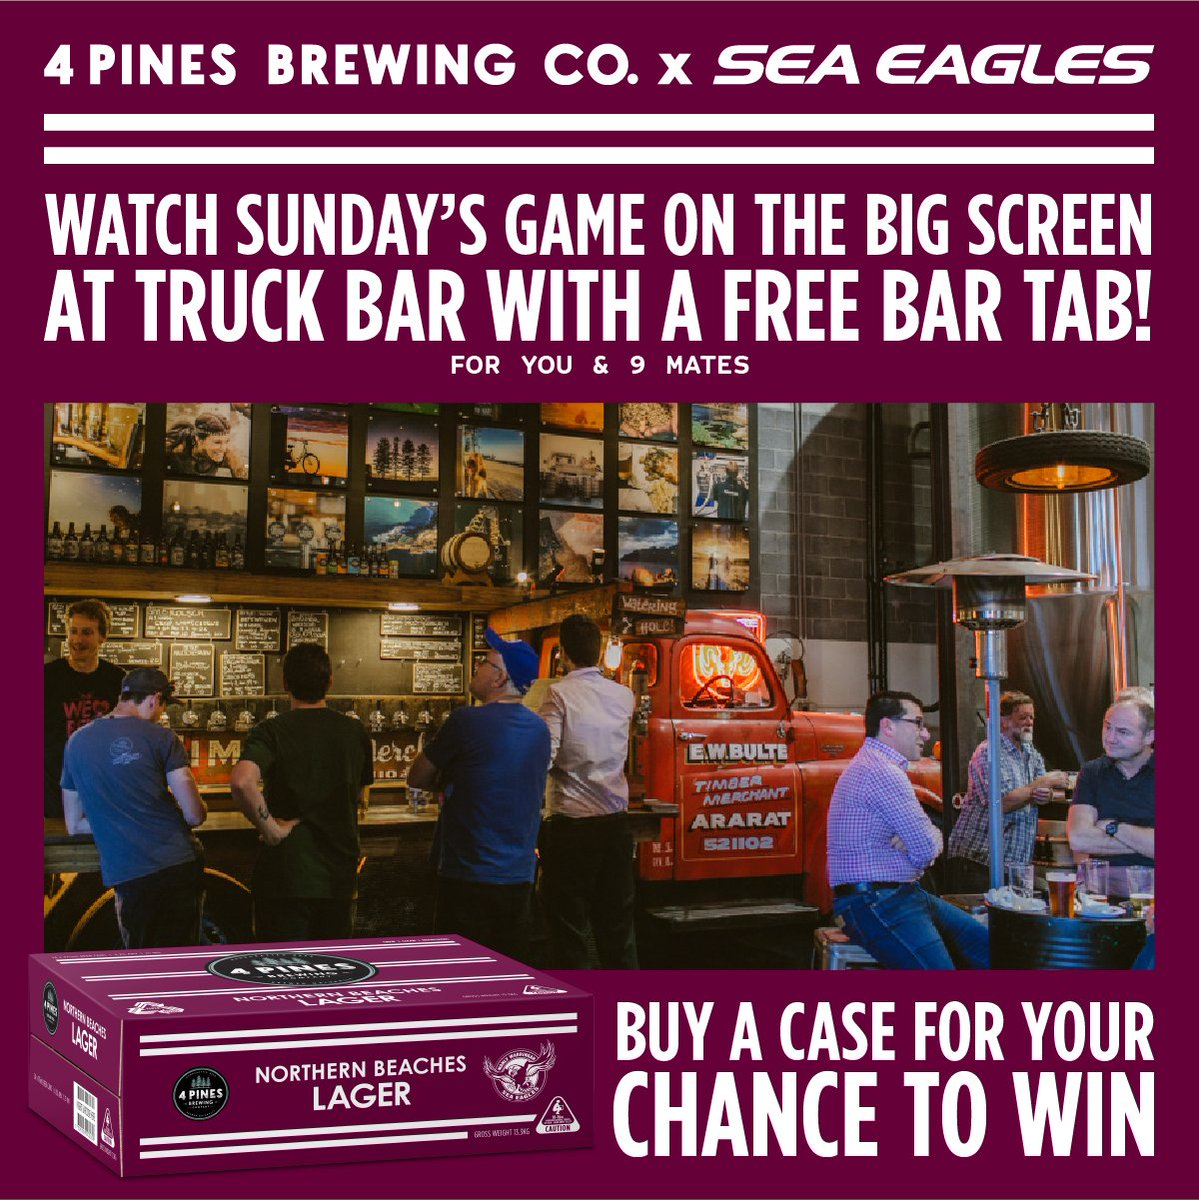 You and 9 mates could have the ENTIRE 4 Pines Truck Bar Brookvale to yourselves to watch Sunday's game with your own bartender and FREE BAR TAB!  Buy a case of Northern Beaches Lager from any 4 Pines venue or via http://www.4pinesbeer.com.au/delivery for a chance to win.  #ManlyForever pic.twitter.com/gw6MrCkZRK